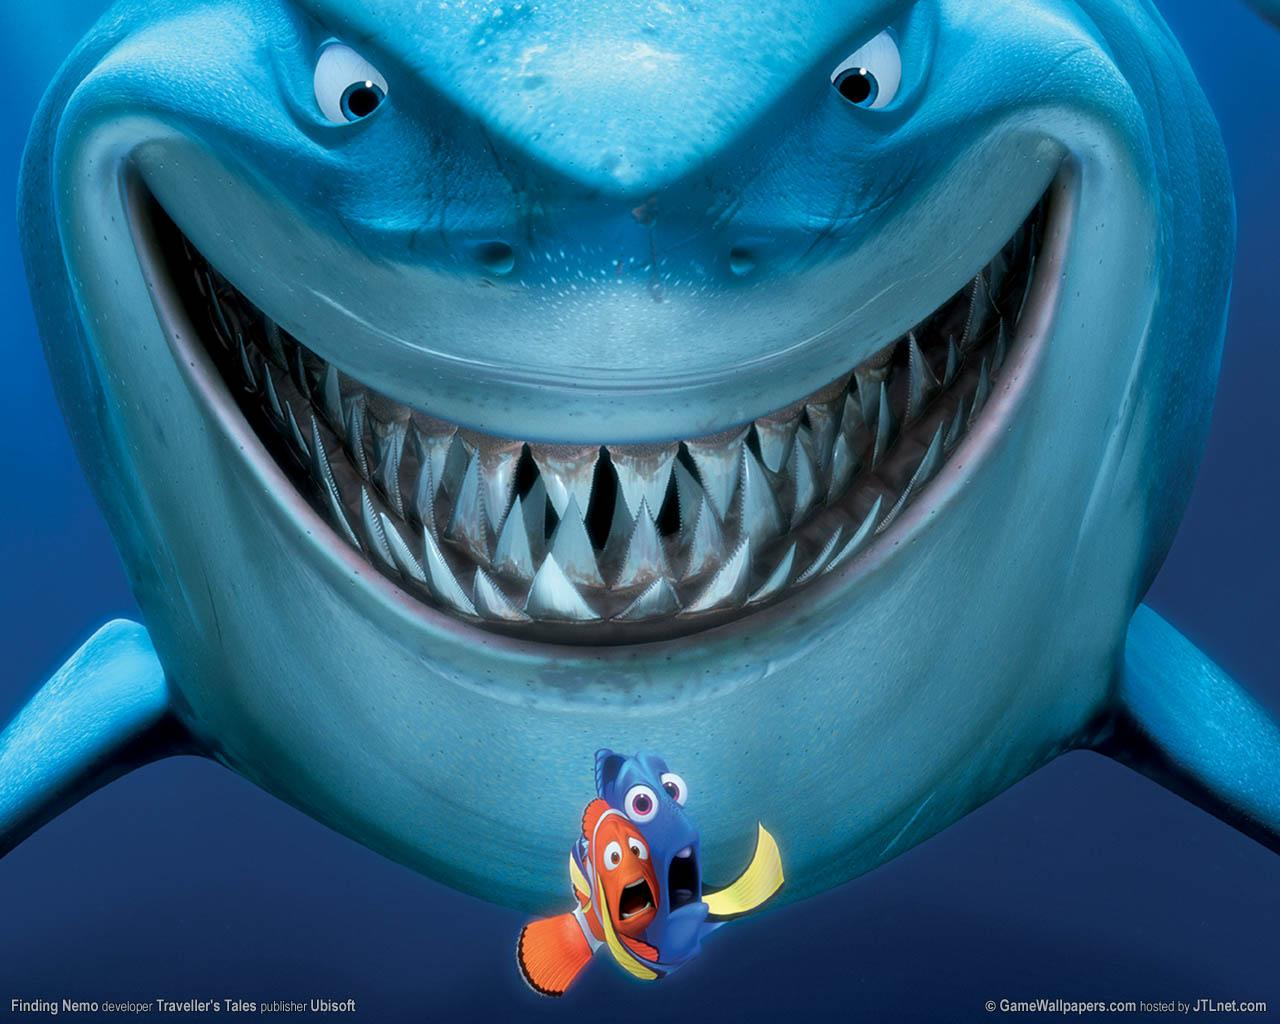 Finding Nemo Wallpapers on oscar fish human bite